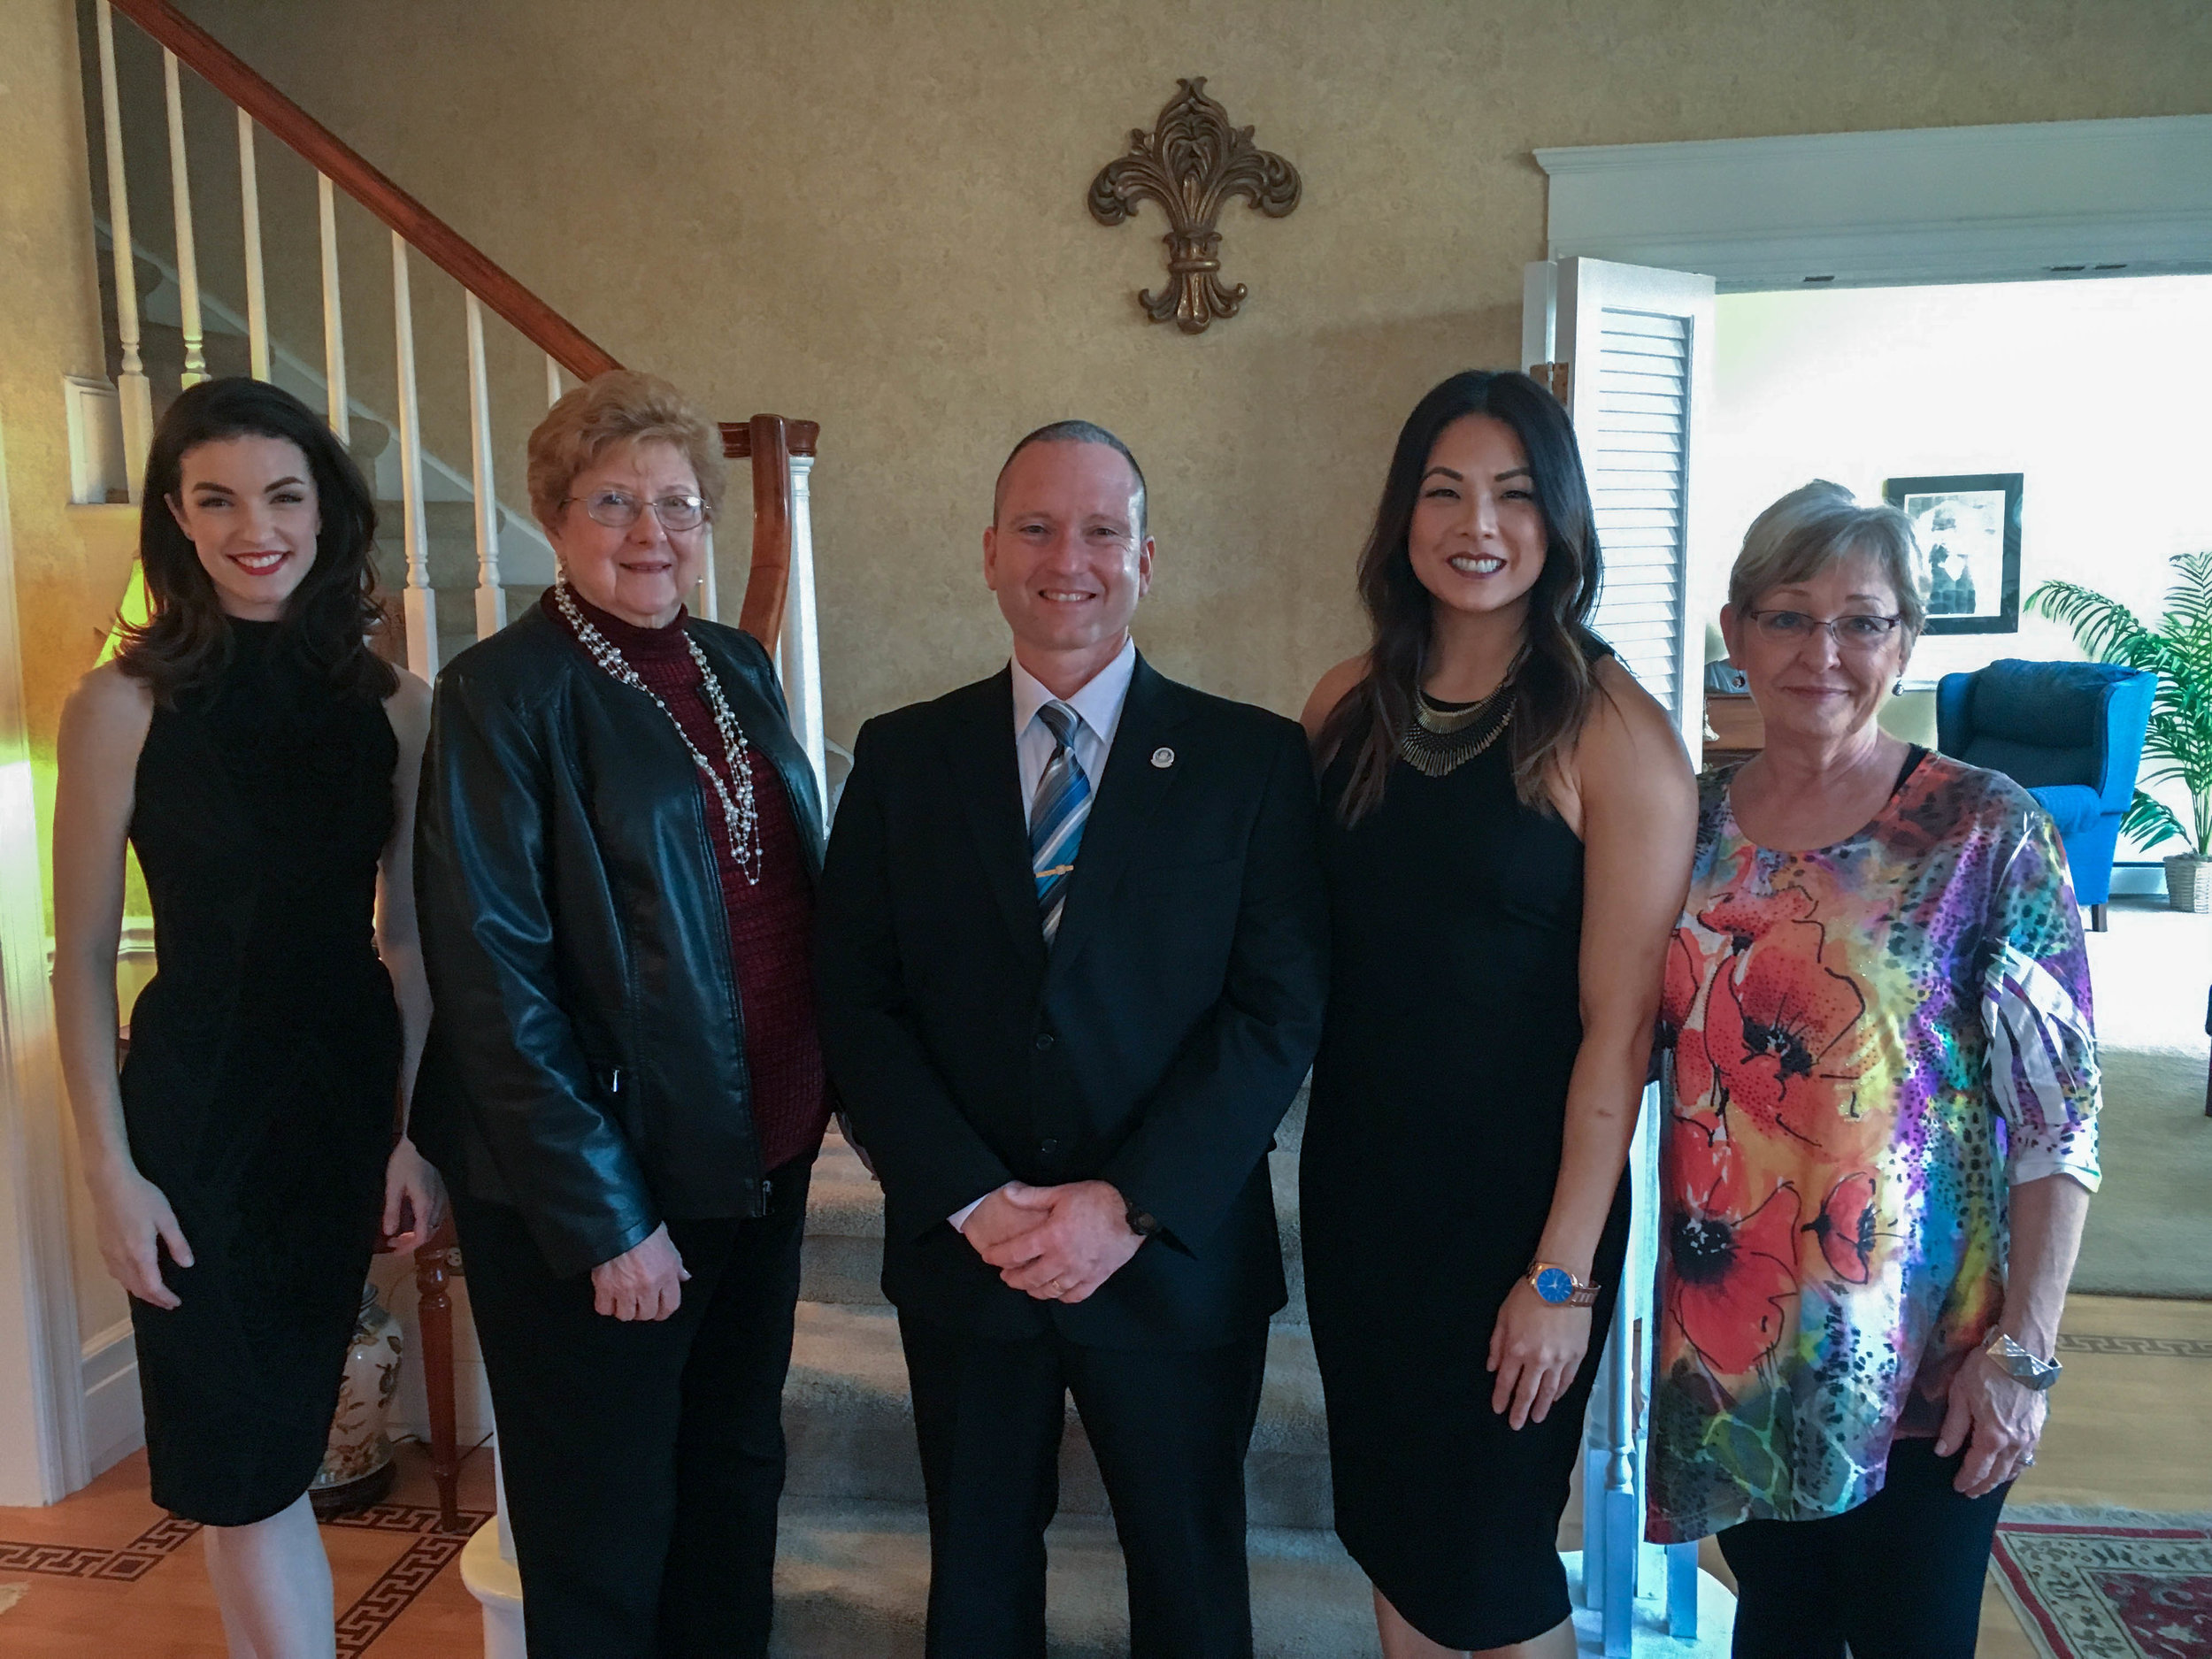 My fellow judges for the Miss Macomb Scholarship Pageant. From left to right: Erin O'Connor, Nancy Lee, Curt Barker, Me, Rauna Brown